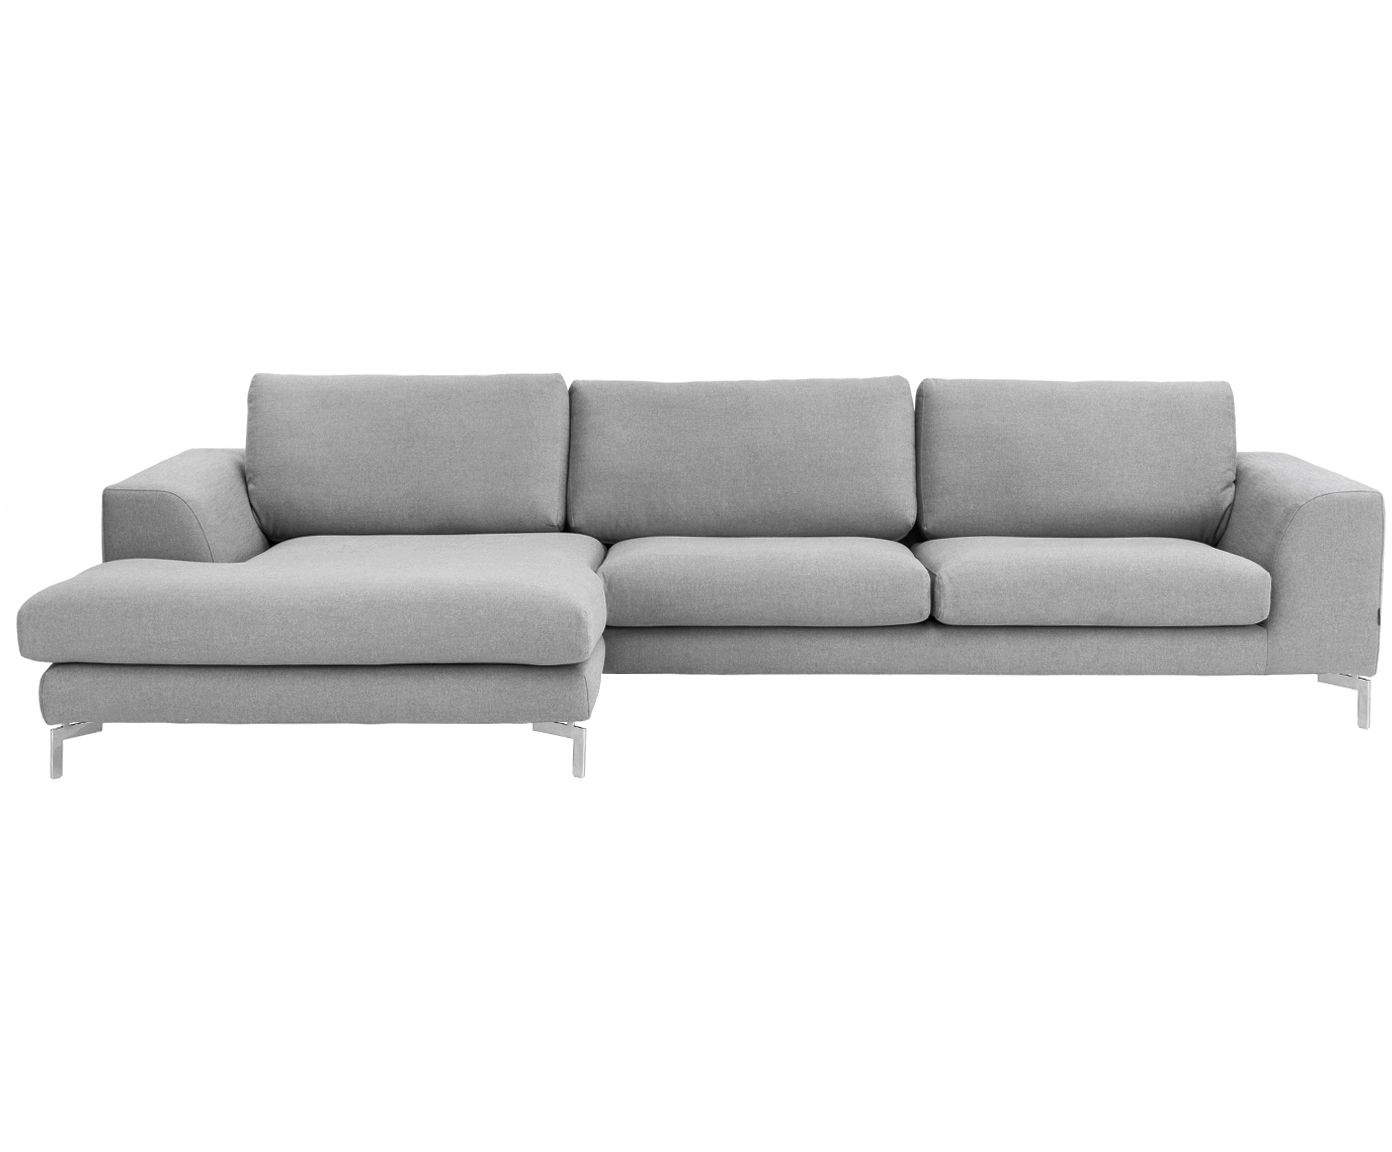 Ausgefallene Ecksofas Ecksofa Philipp Eckteil Links New Home Pinterest Sofa